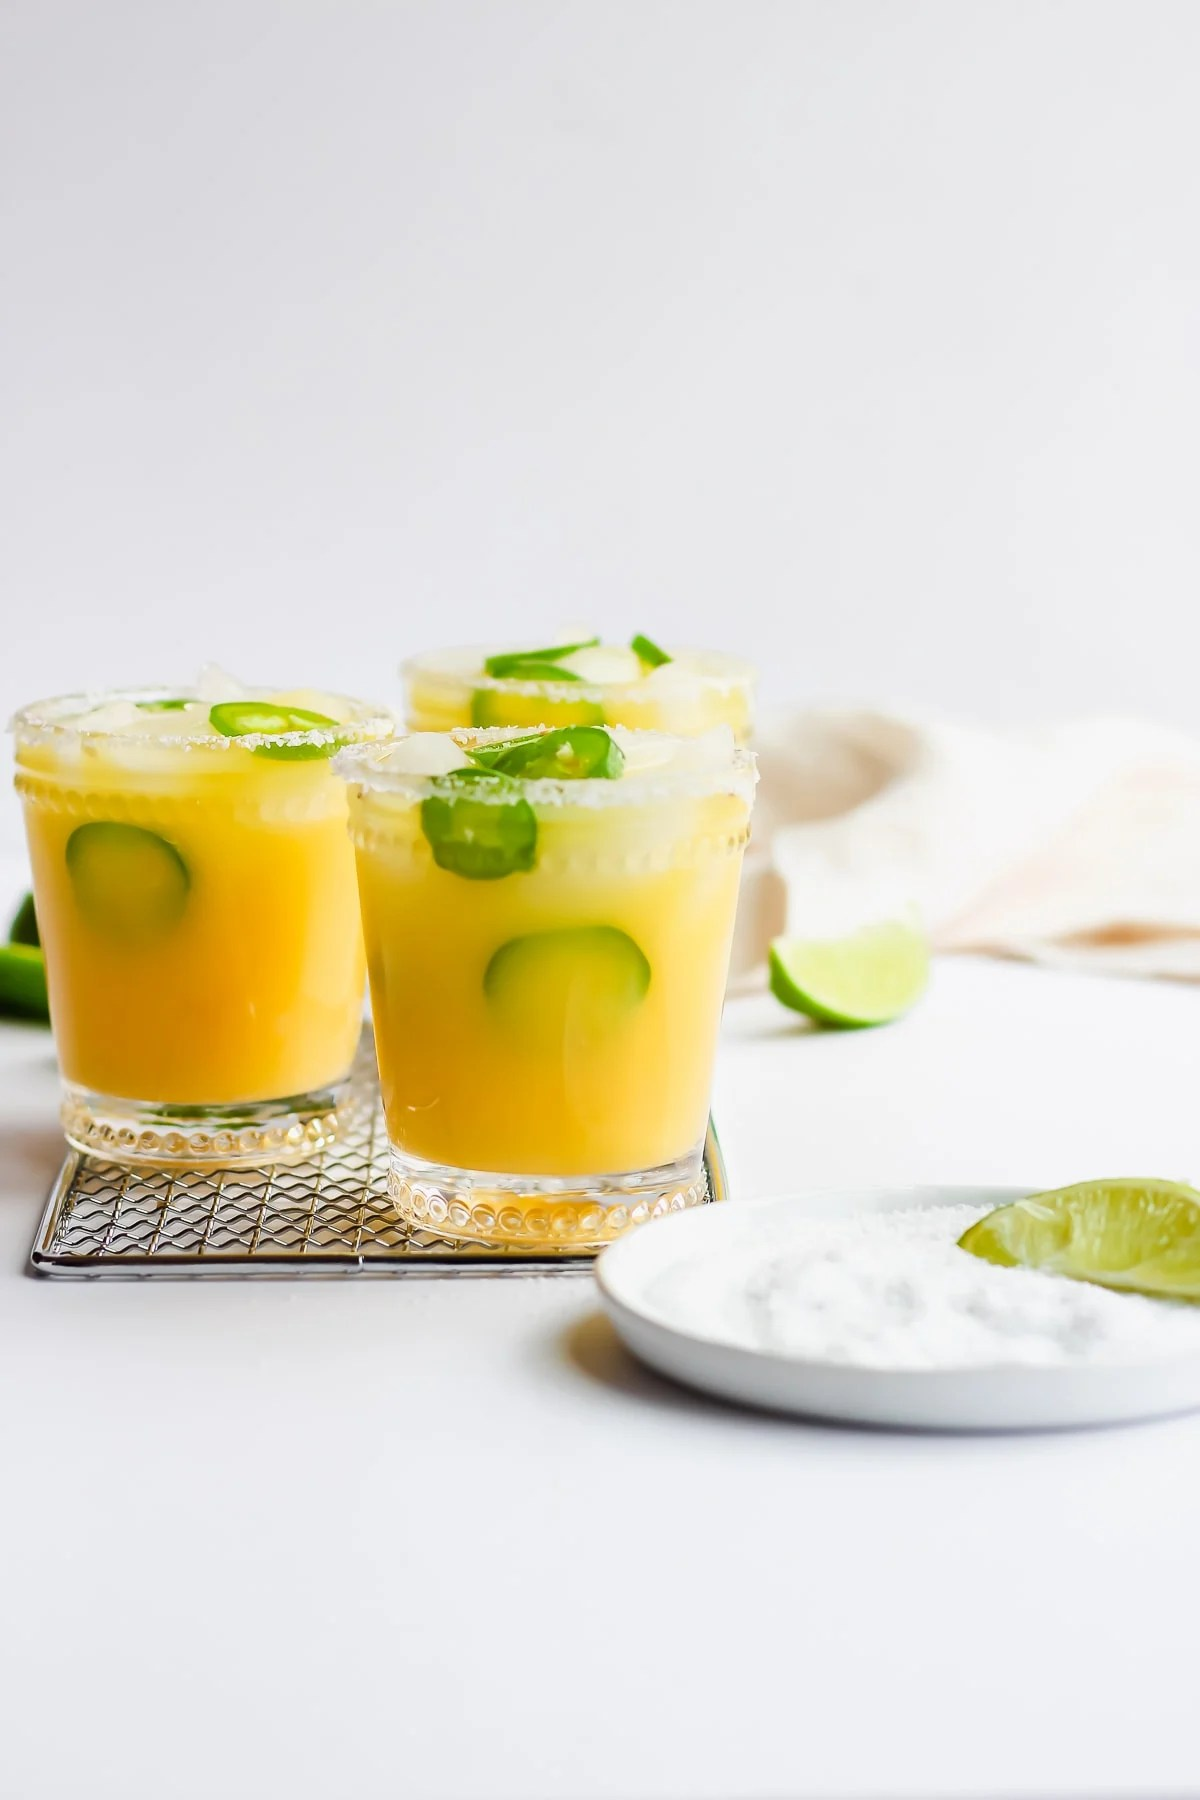 Spicy Jalapeno Margarita Mocktail - a simple and refreshing margarita mocktail! #whole30